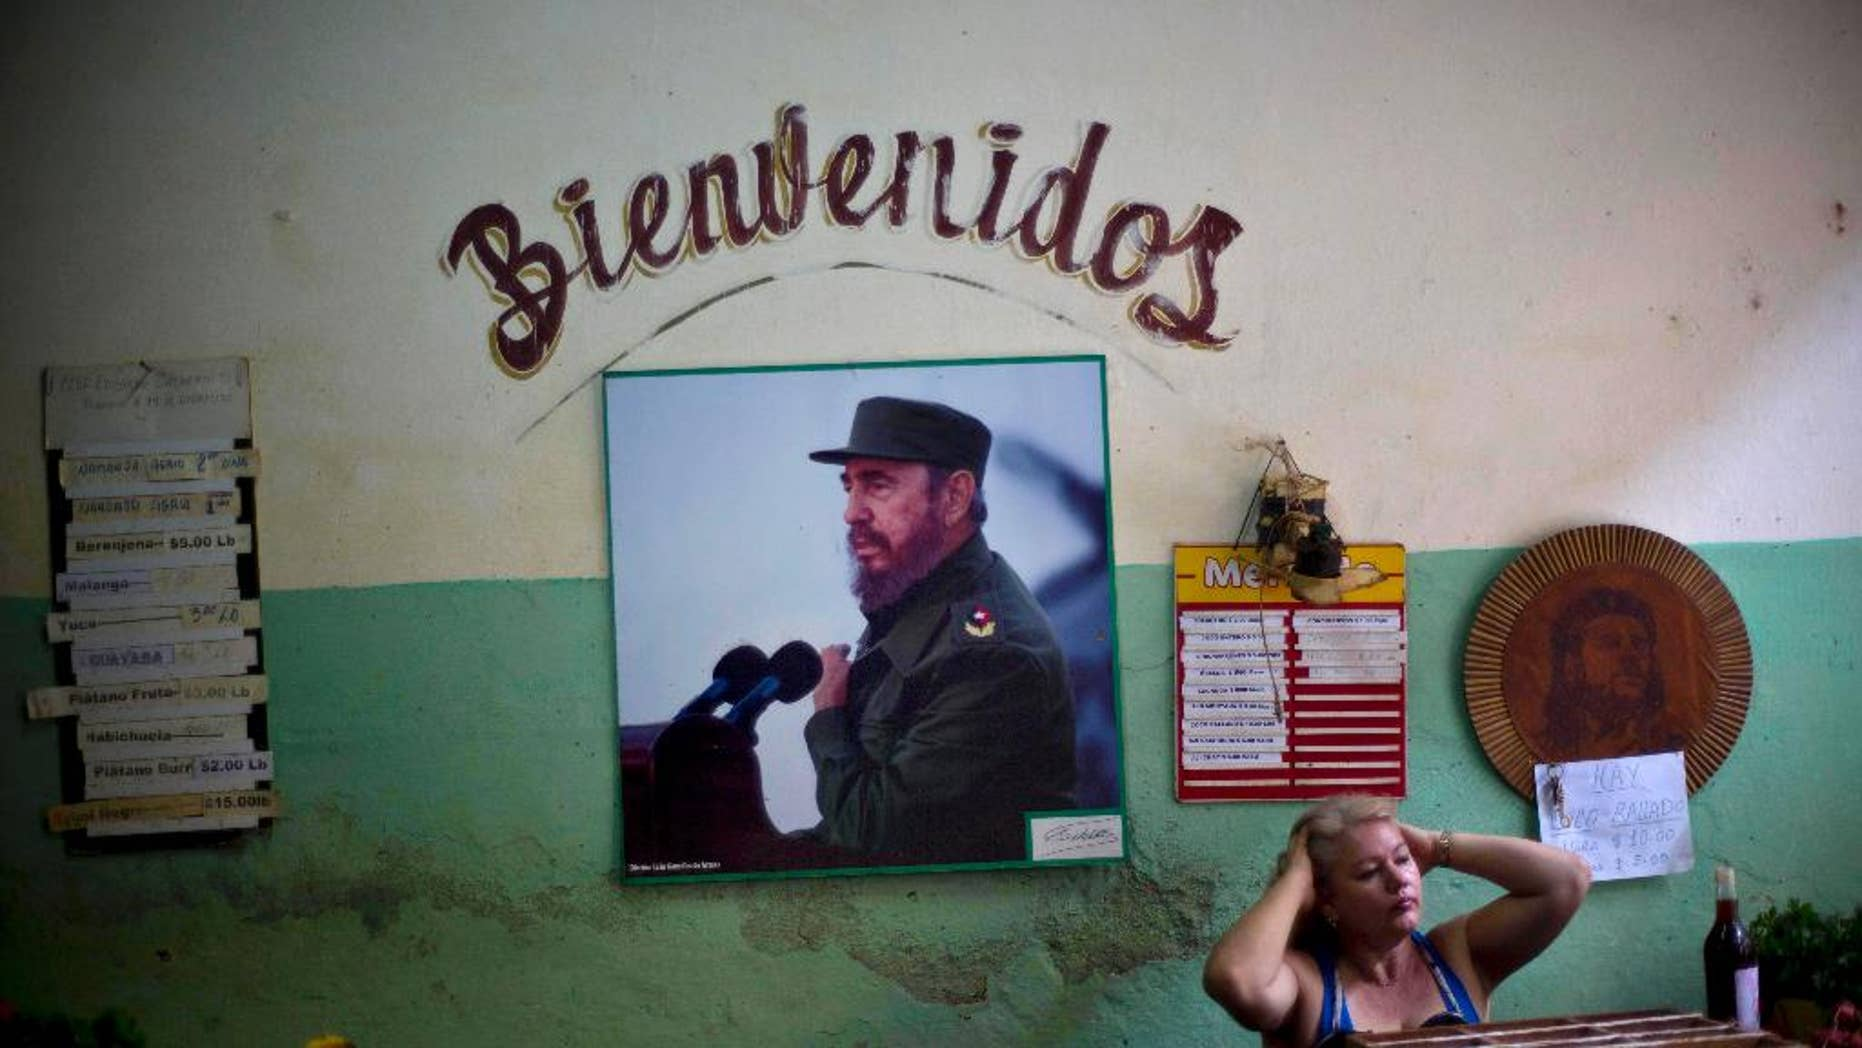 """FILE - In this Dec. 26, 2014 file photo, a photograph of Fidel Castro hangs under the Spanish word """"Welcome"""" on the wall at a state-run food market in Havana, Cuba. On Monday, Jan. 26, 2015, after more than a month of silence, Castro made his first public comments about the news that the U.S. and his island nation will restore diplomatic relations after more than 50 years of hostility. (AP Photo/Ramon Espinosa, File)"""